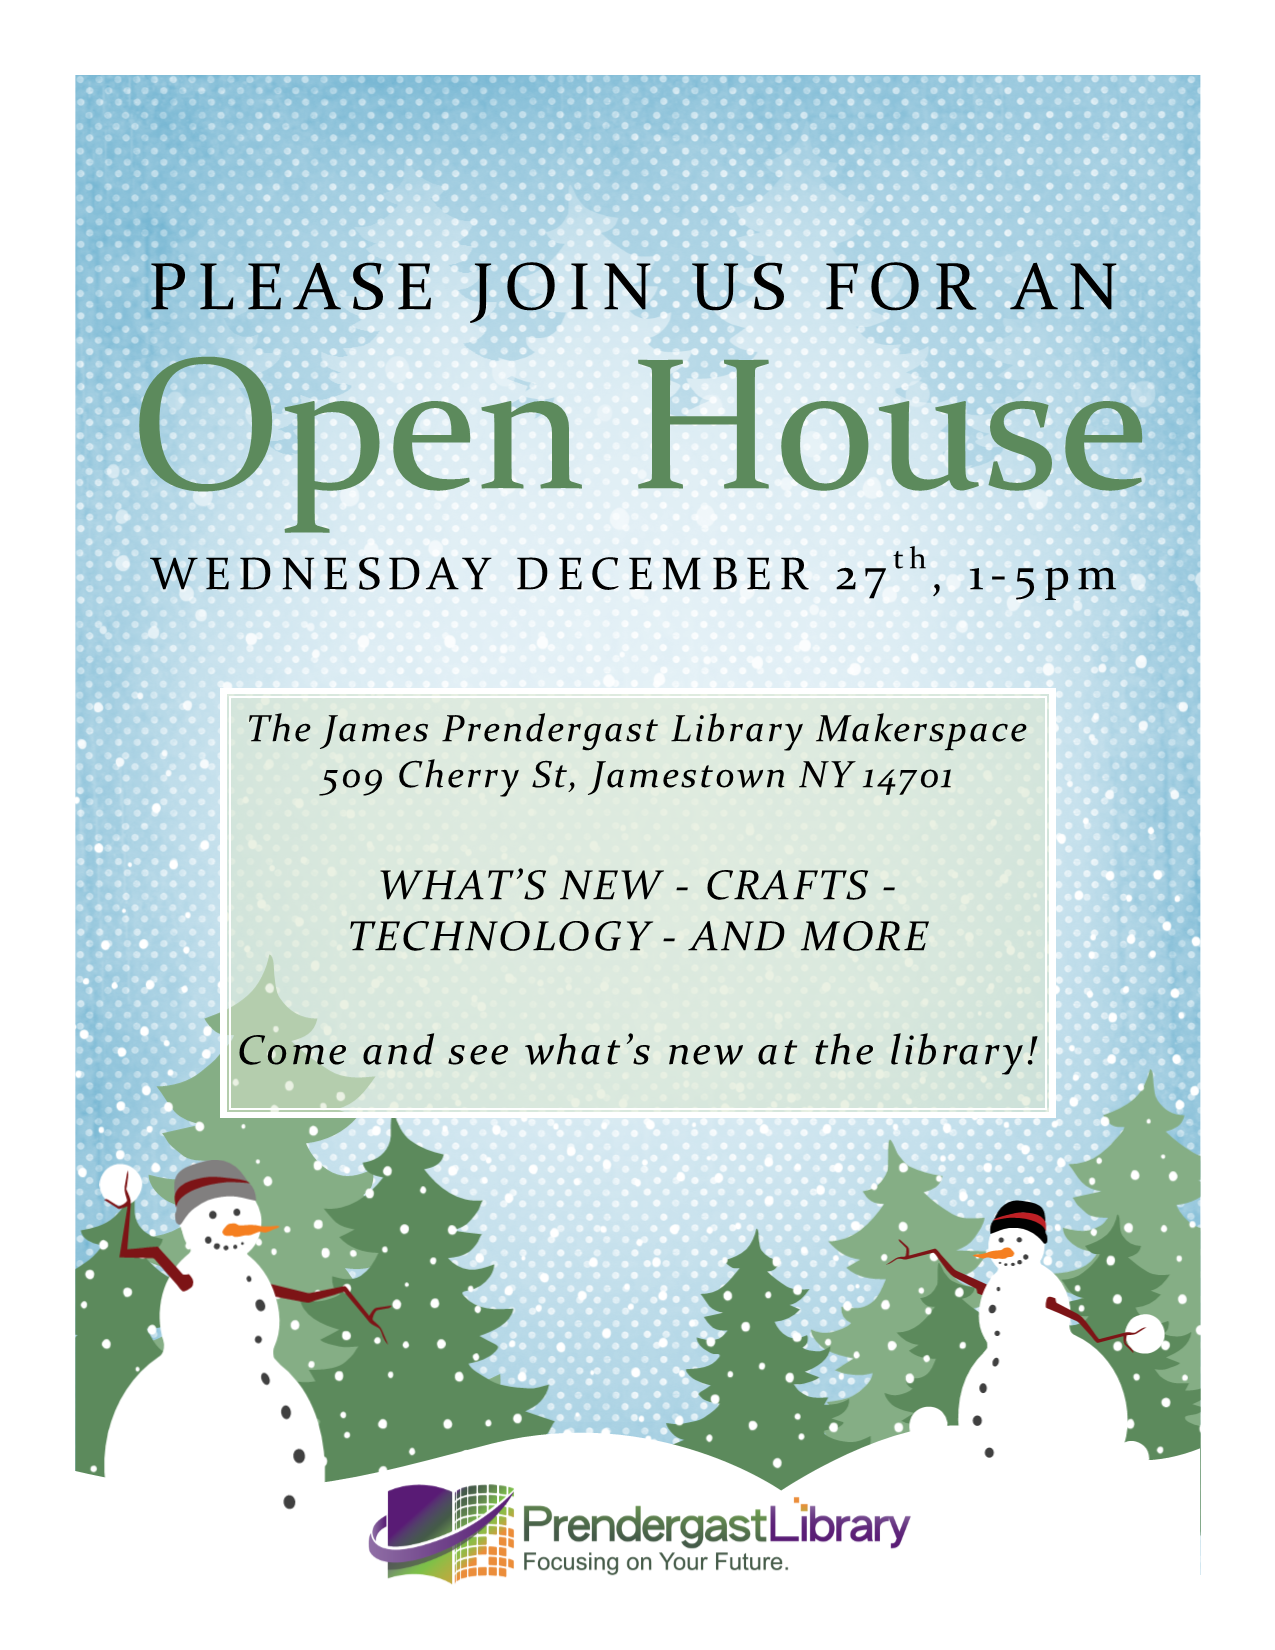 Prendergast Library will host an Open House on Wednesday, December 27th